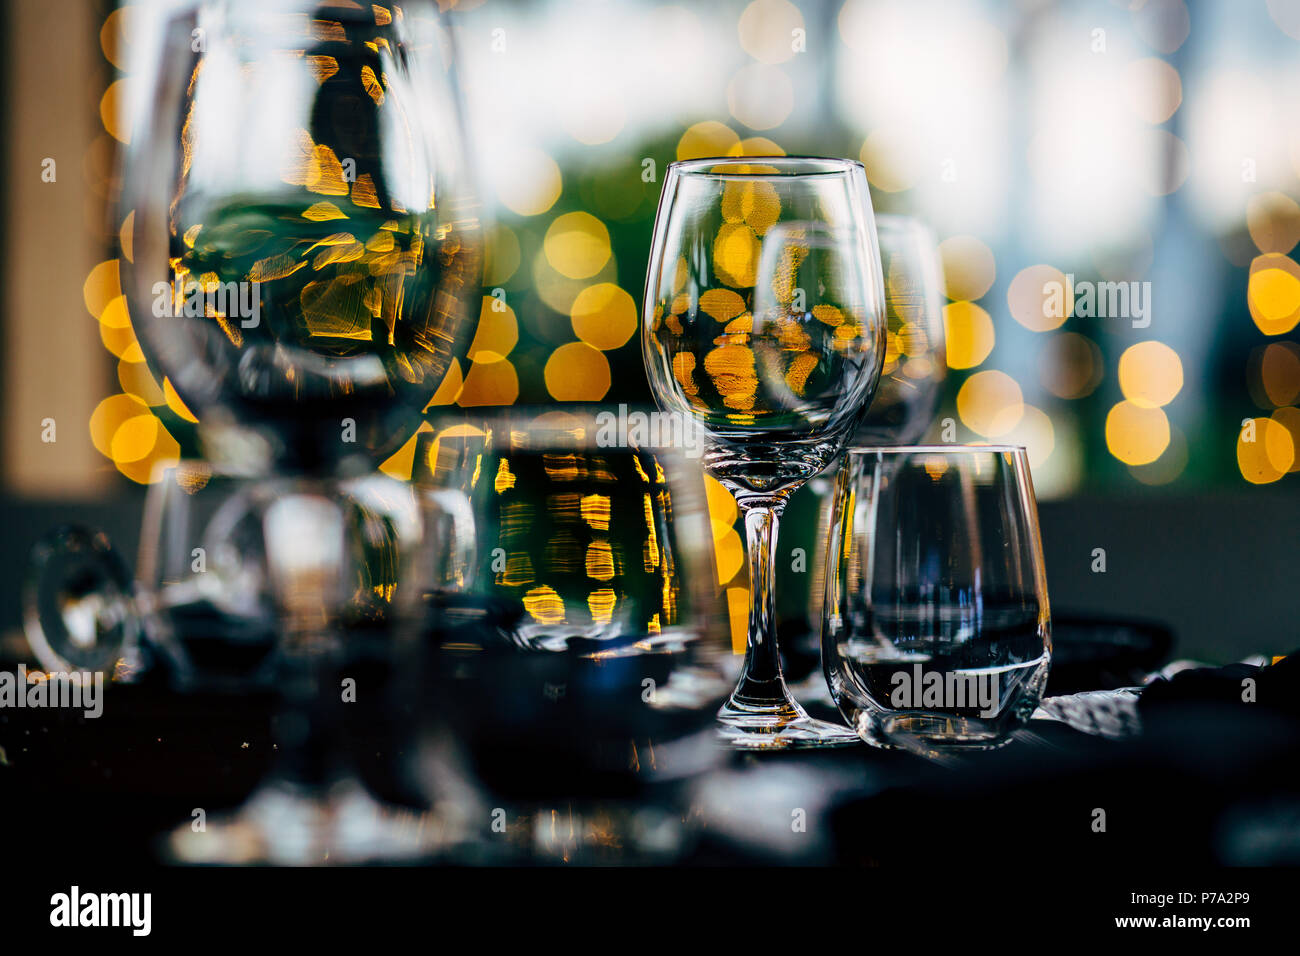 Luxury table settings for fine dining with and glassware, beautiful blurred  background. For events, weddings. WEDDINGS, Wedding detals and planing. - Stock Image